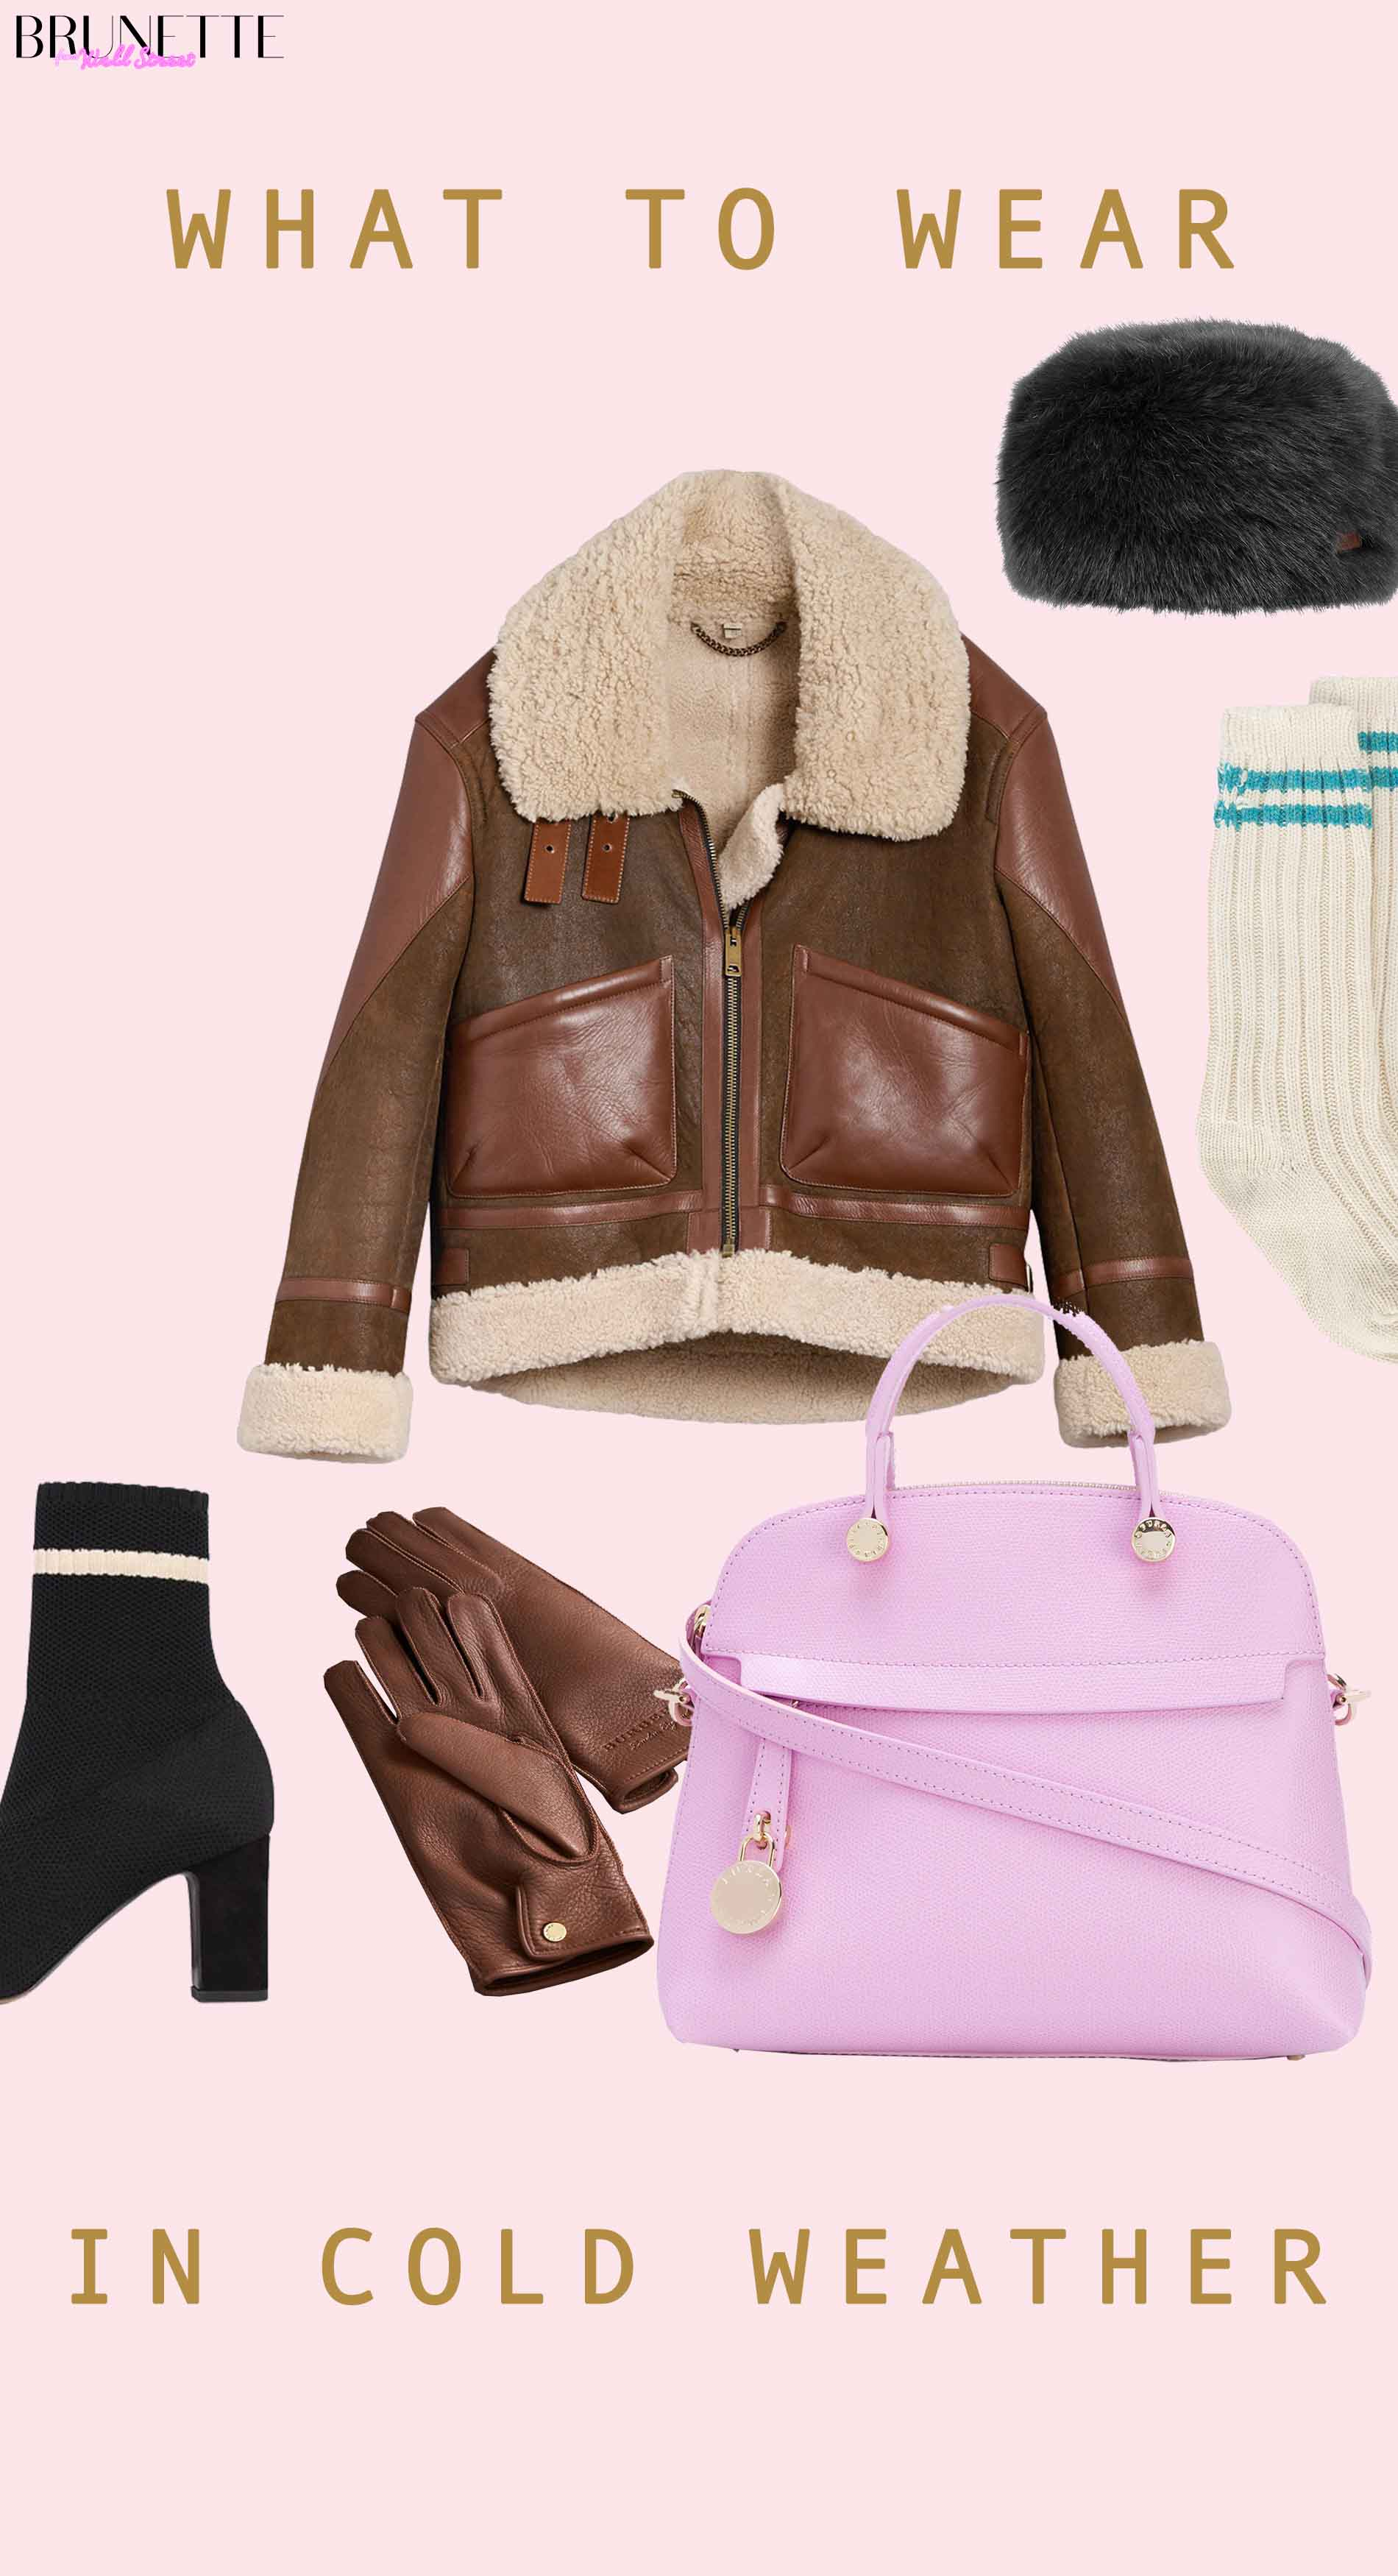 Burberry leather shearling jacket, pink Furla tote bag, brown leather gloves, black faux fur hat, cashmere socks, black sock booties with text overlay What to Wear in Cold Weather